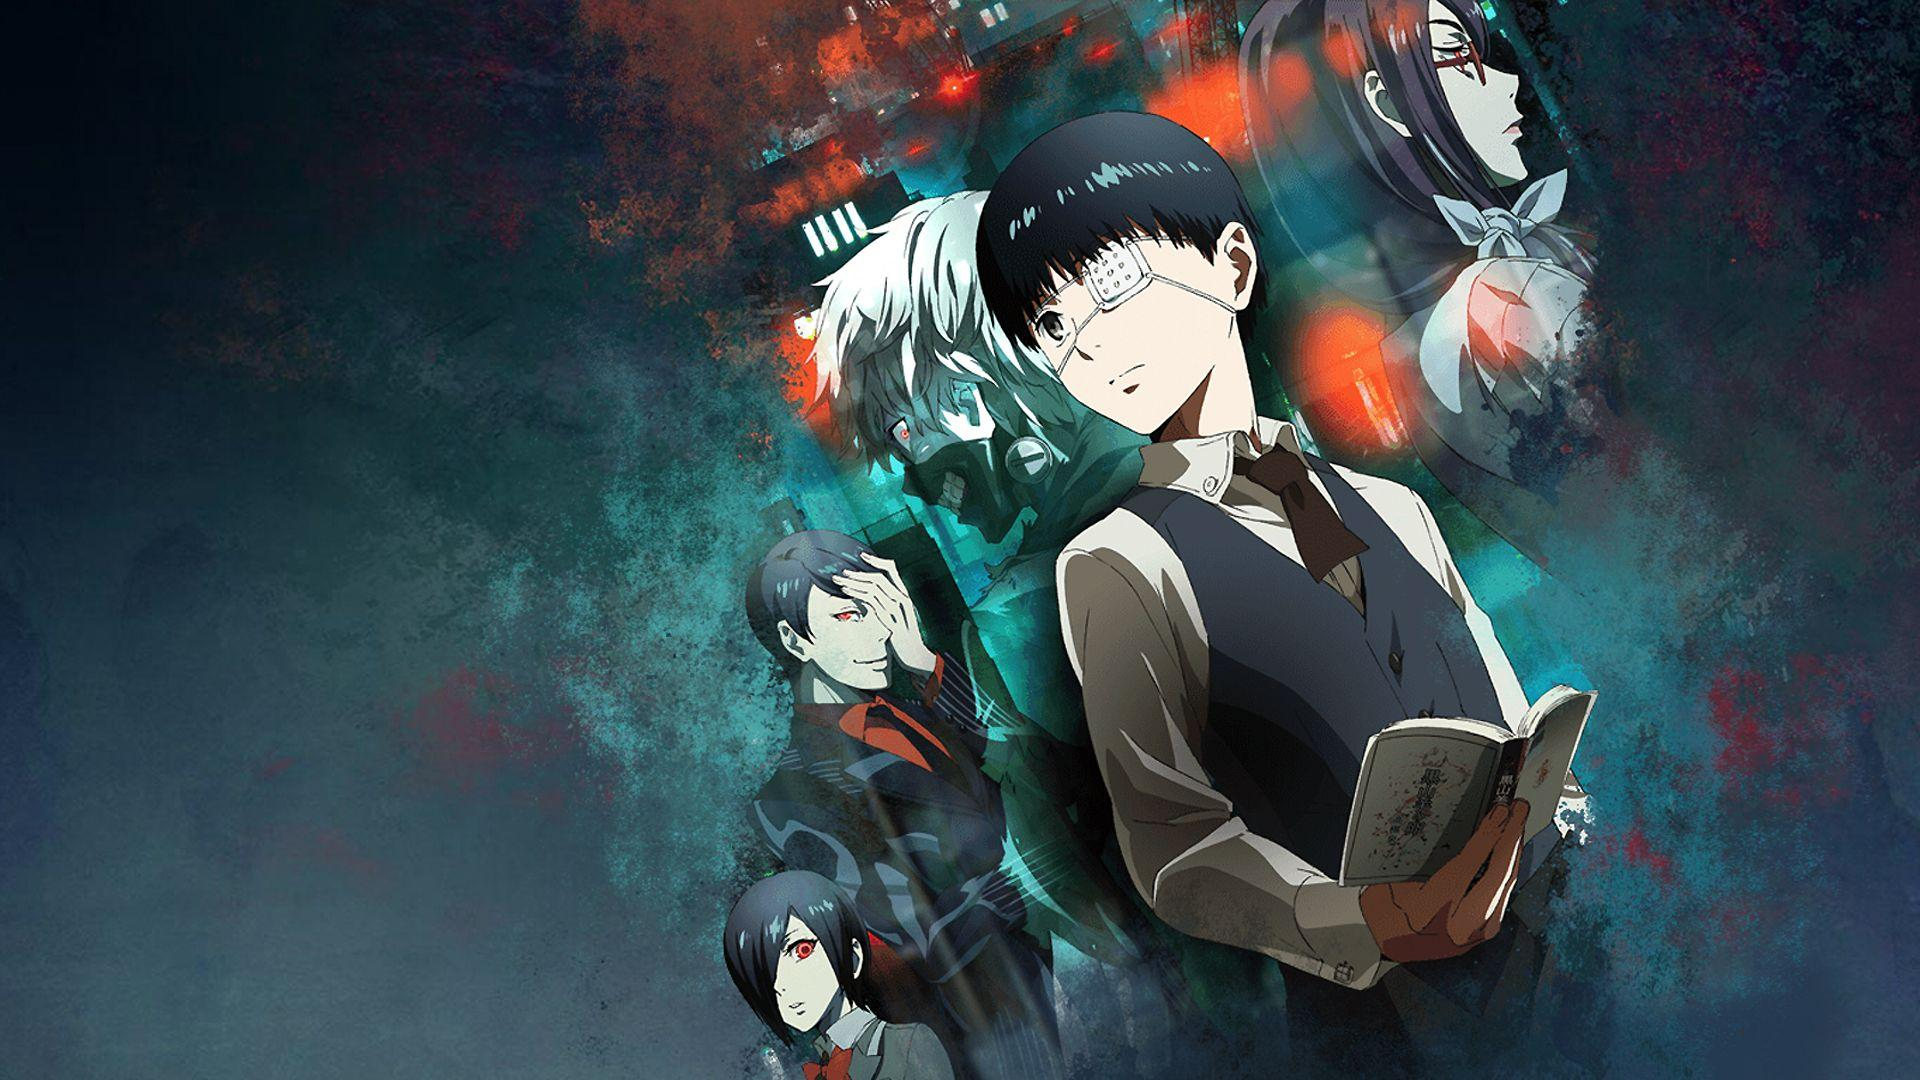 Simple Wallpaper High Quality Tokyo Ghoul - wp1809670  Best Photo Reference_274025.jpg